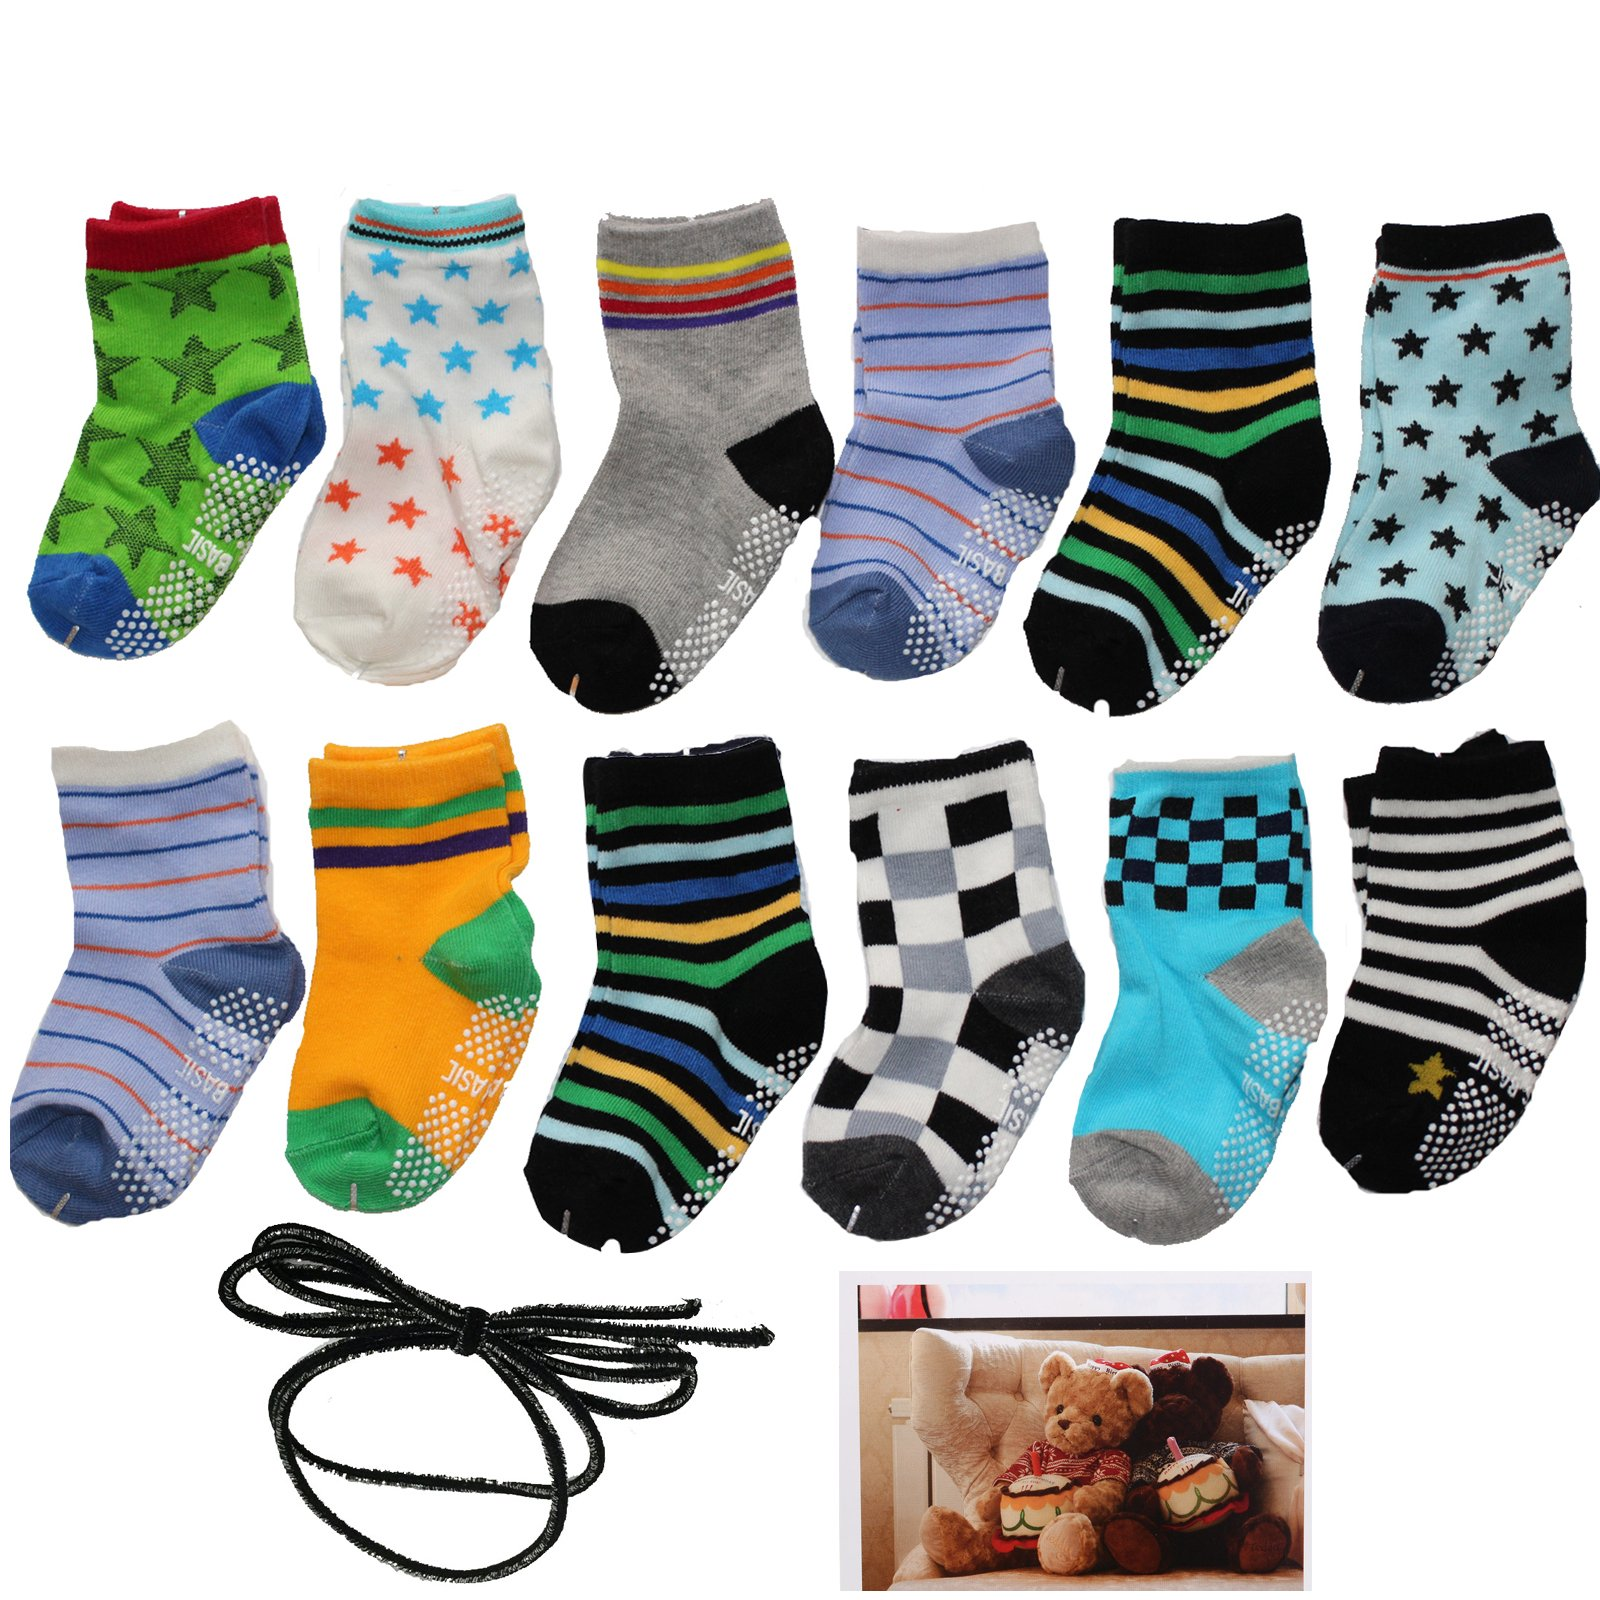 Yaobabymu 6 Pairs 16-36 Months Baby Boy's Girl's Non Skid Ankle Cotton Toddler Anti Skid Slip Slipper Stretch Knit Socks and Gift , Footsocks sneakers Socks,Length 10-12cm